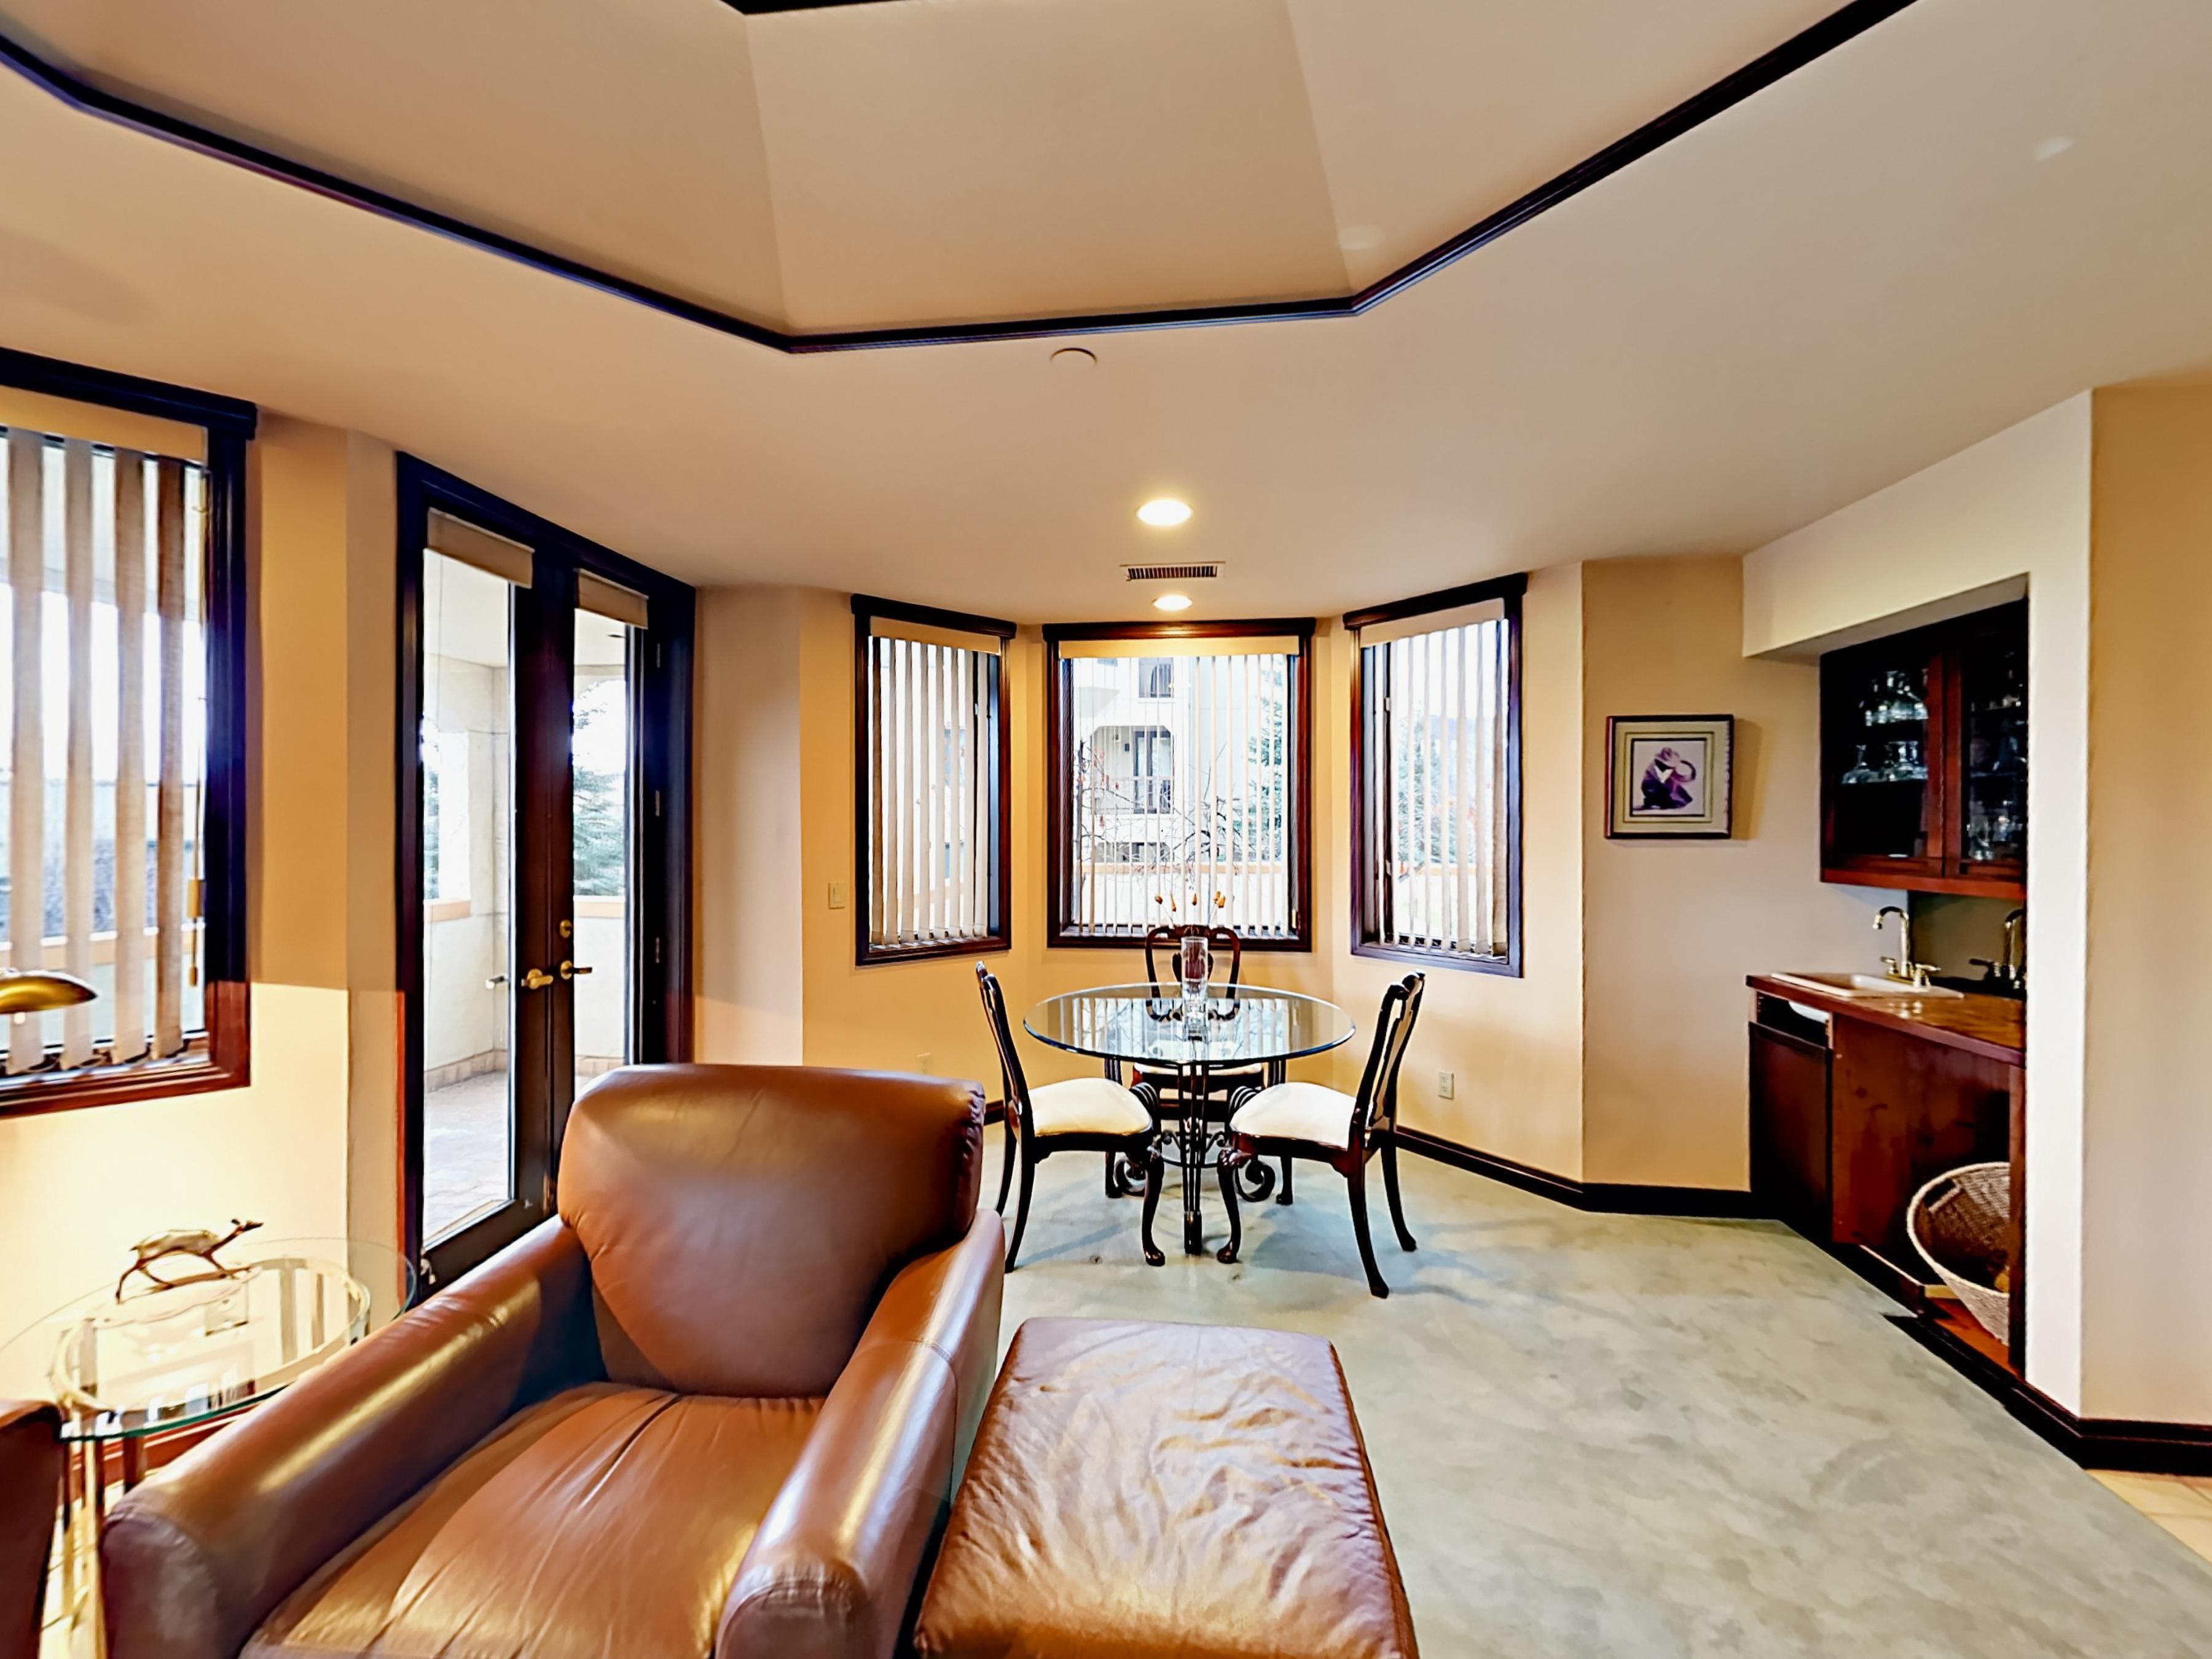 Polished Condo near Slopes with Two Master Suites